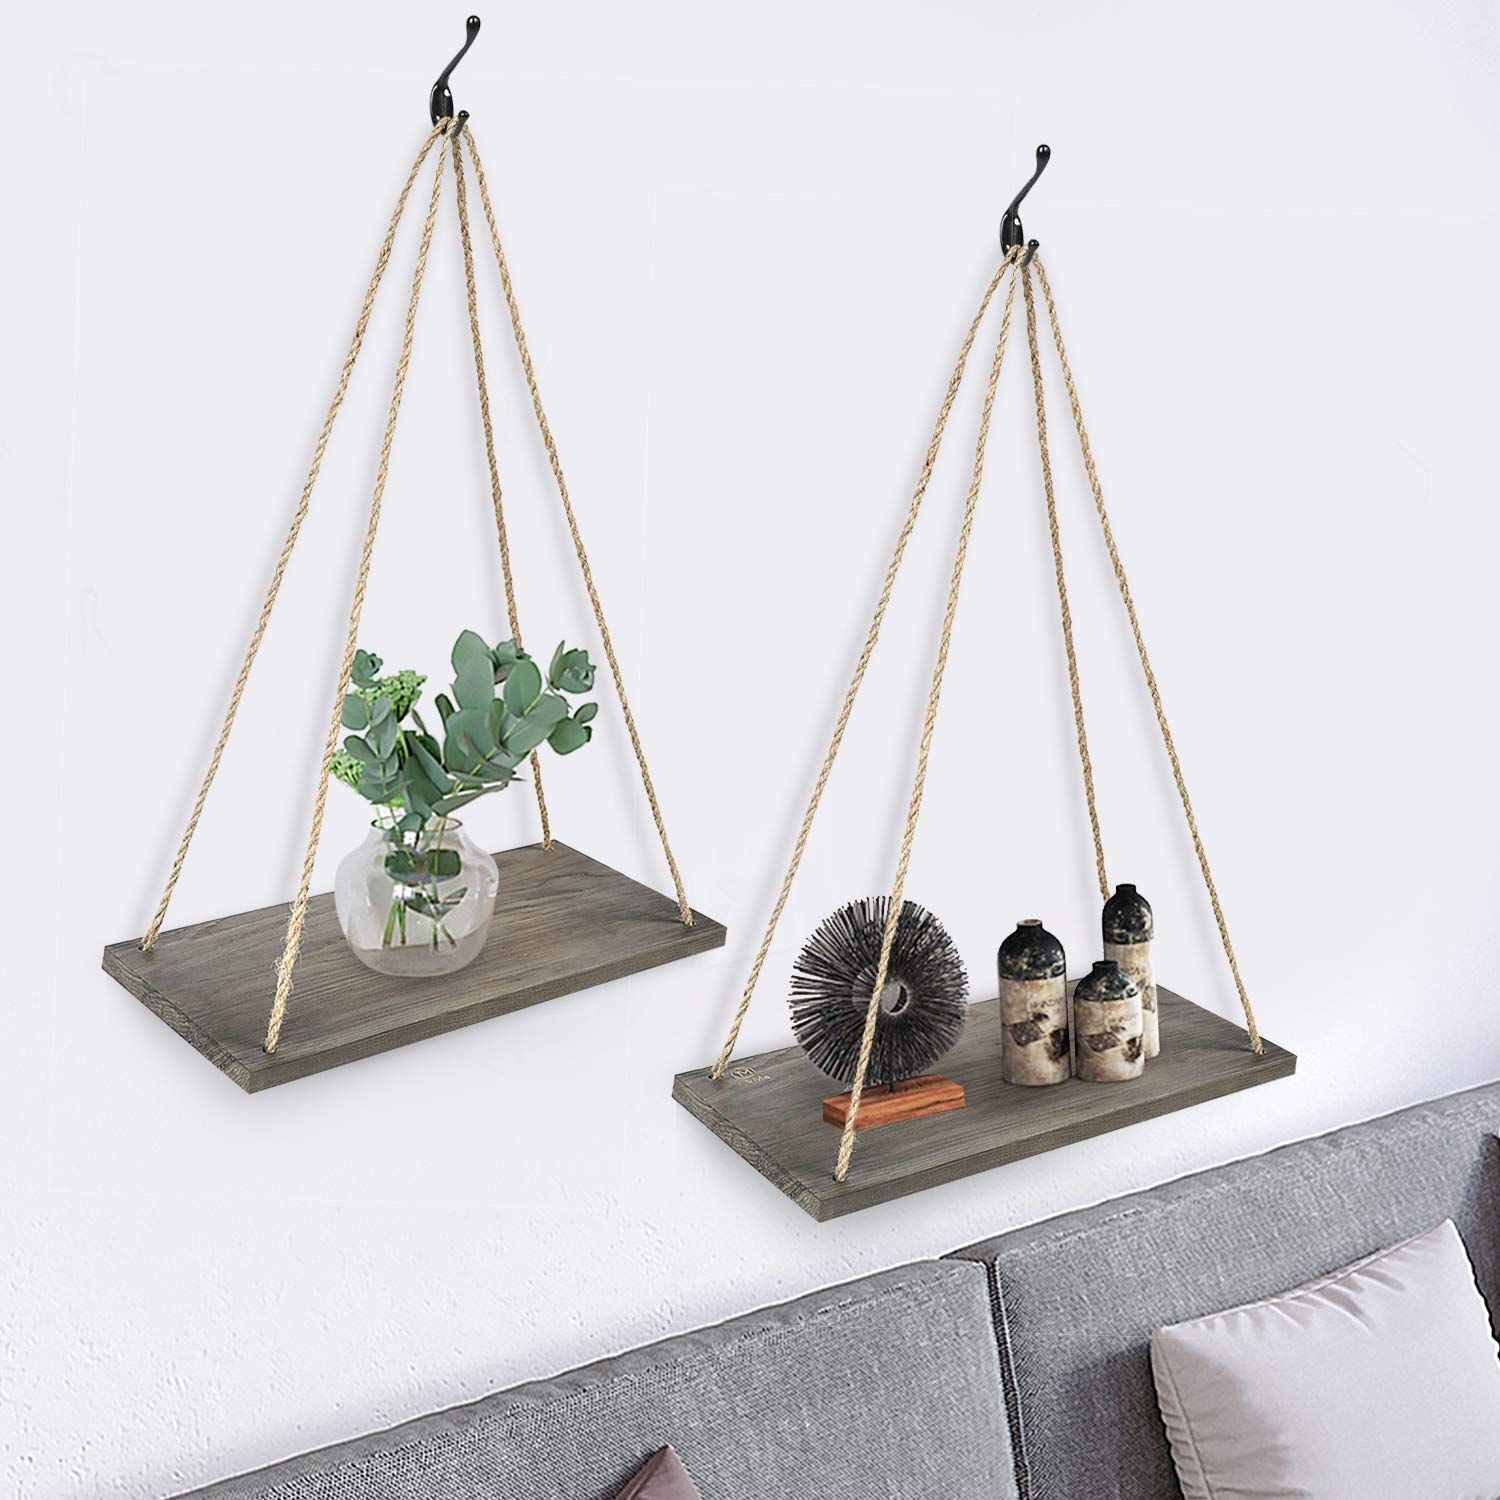 Beautiful rustic shelves can be installed 3 ways